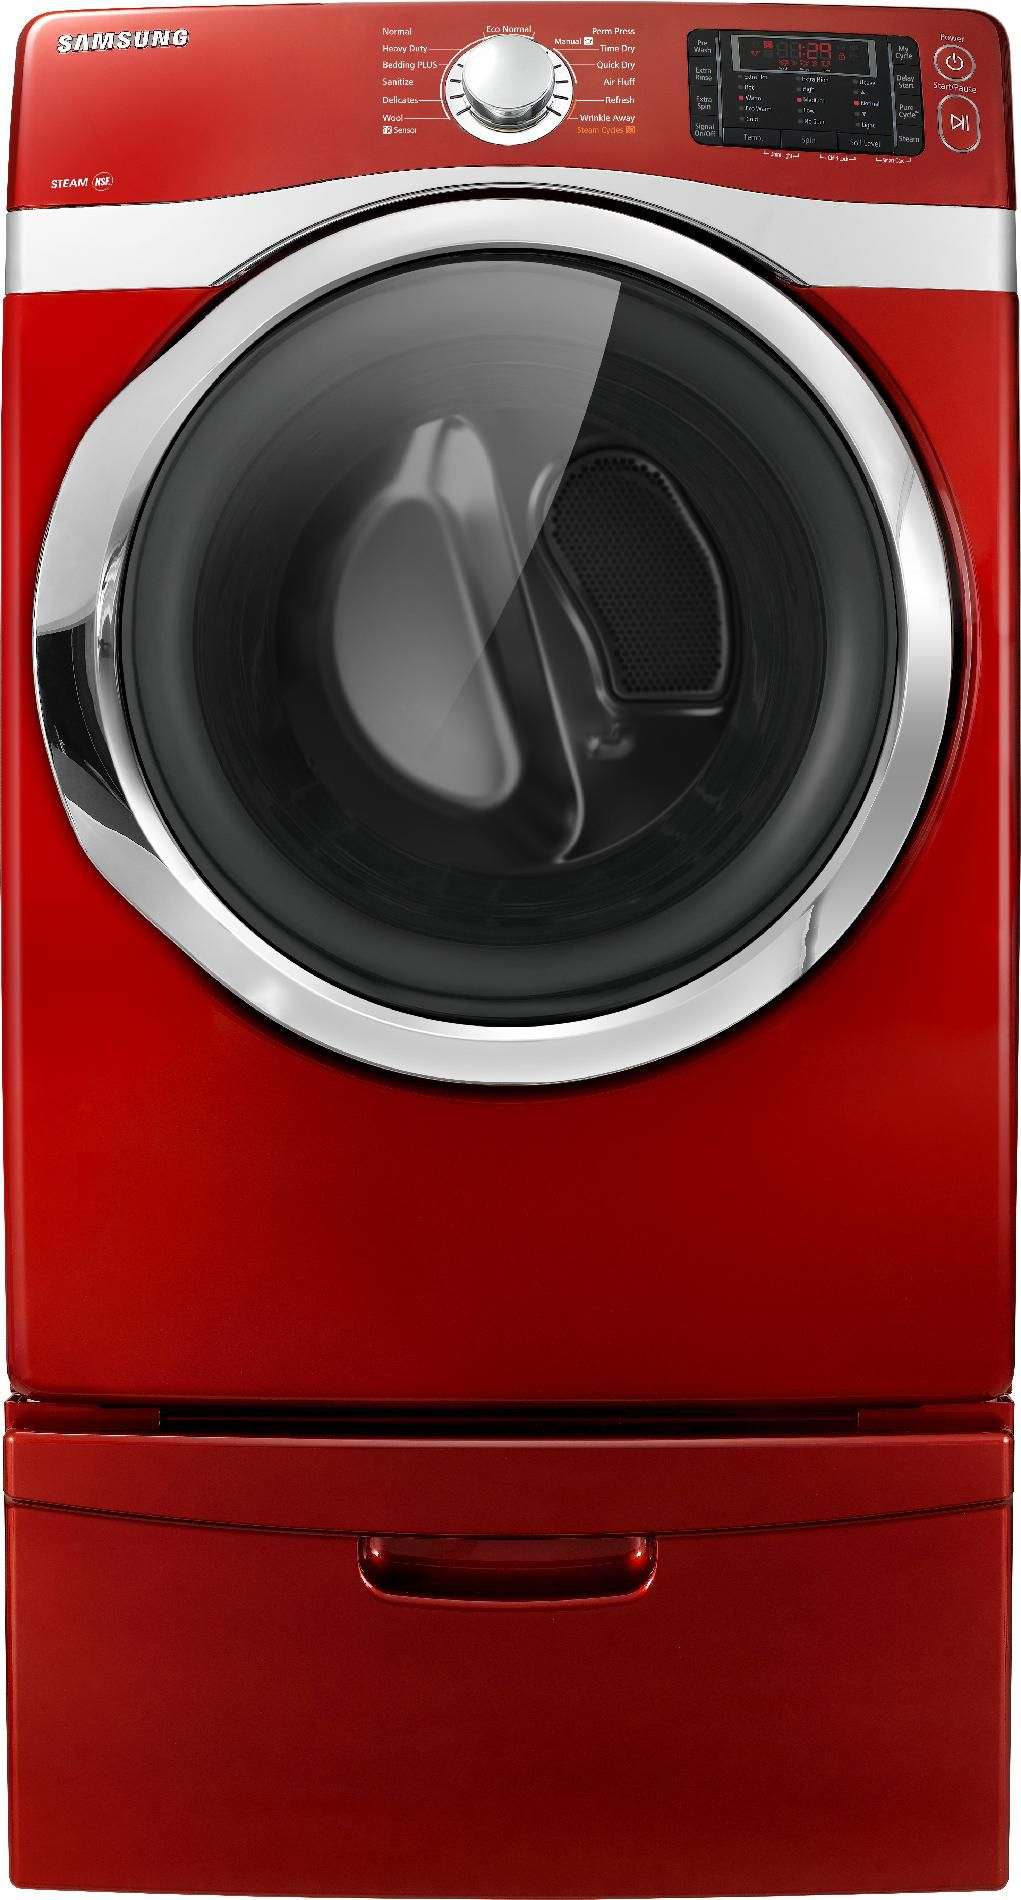 Samsung 7.5 cu. ft. Steam Electric Dryer - Red